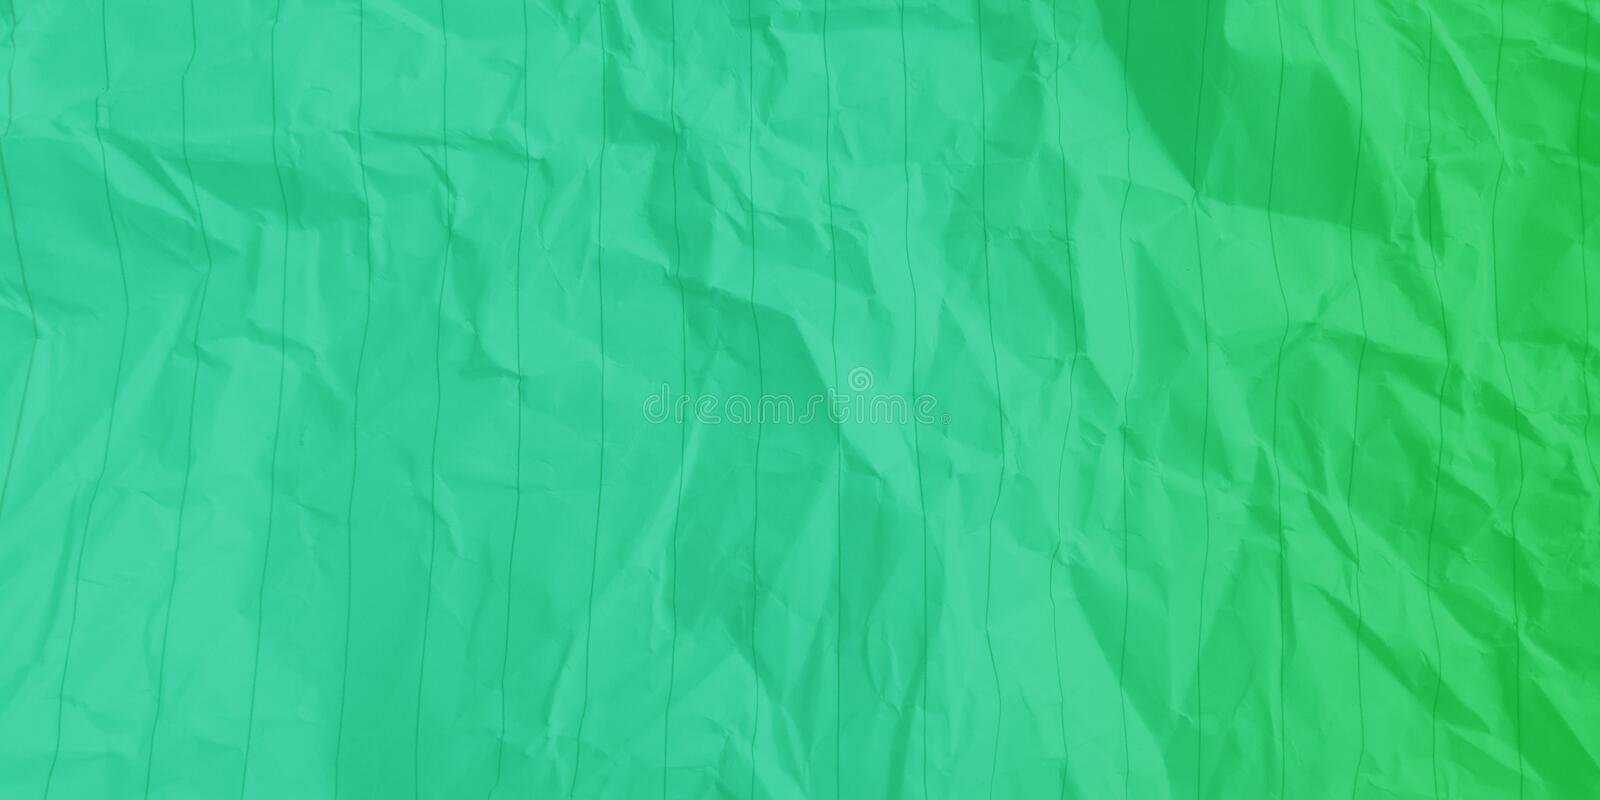 Abstract crumpled paper ocean green grass green color multi colors effects background. royalty free stock photography